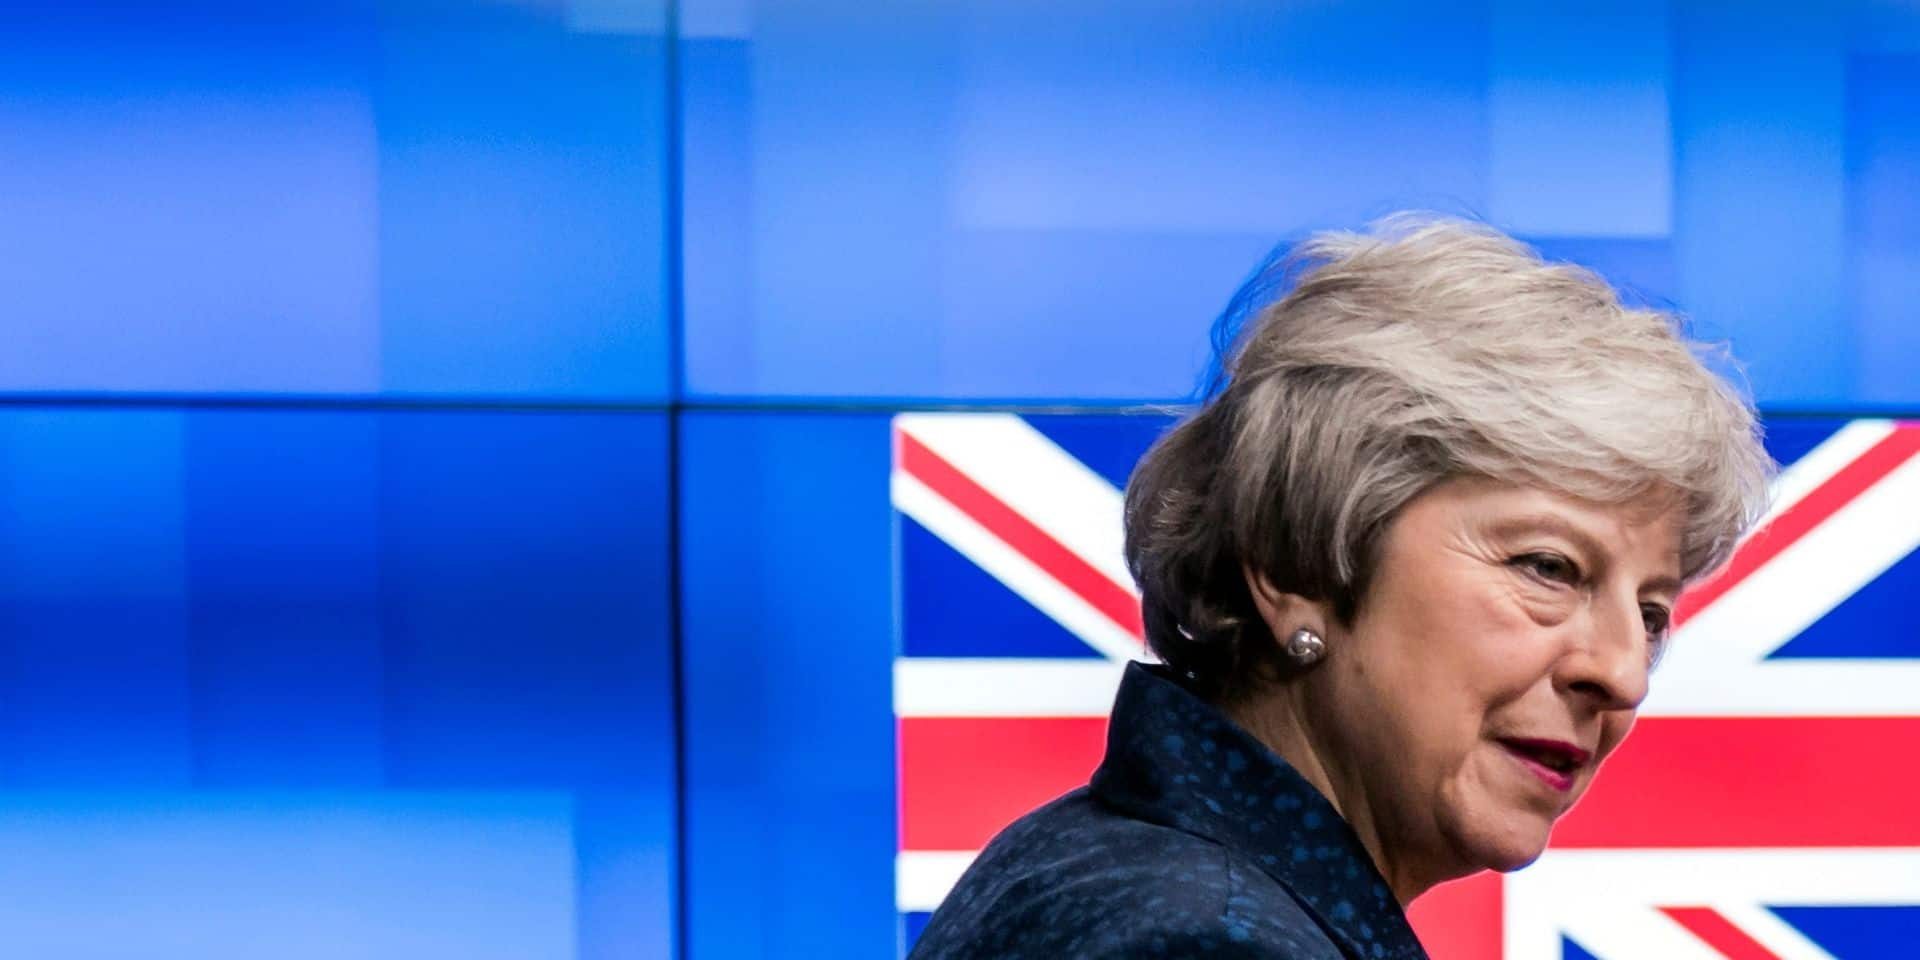 Brexit: Theresa May veut jouer les prolongations